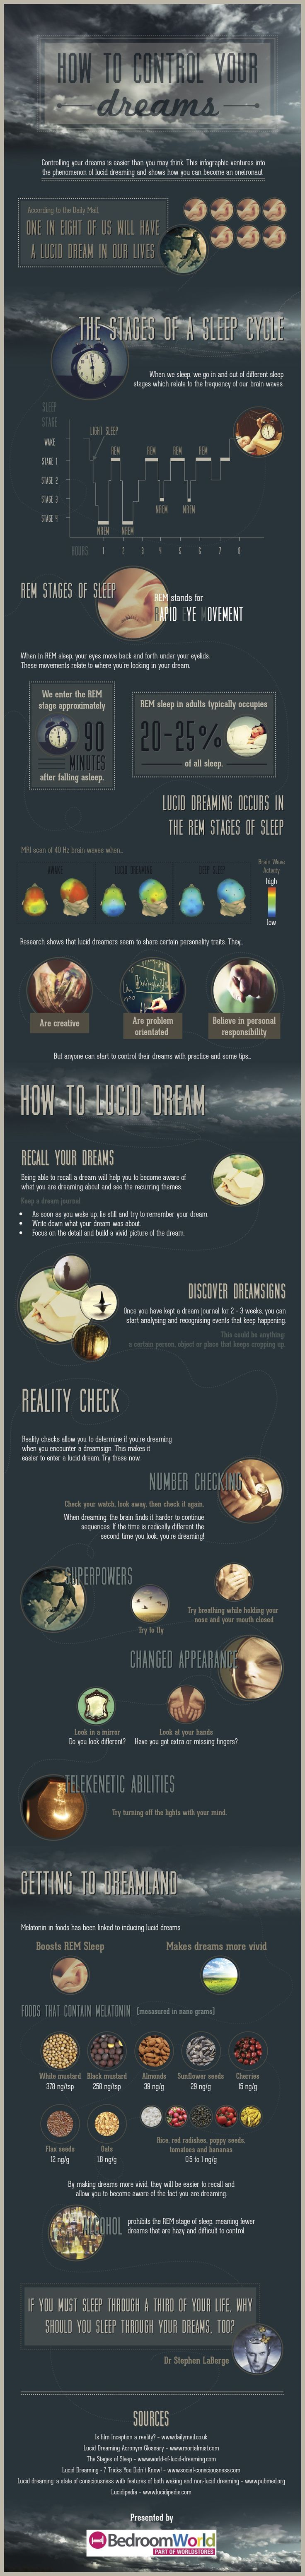 Ever Wanted To Control Your Dreams? Here's How You Can Do It!